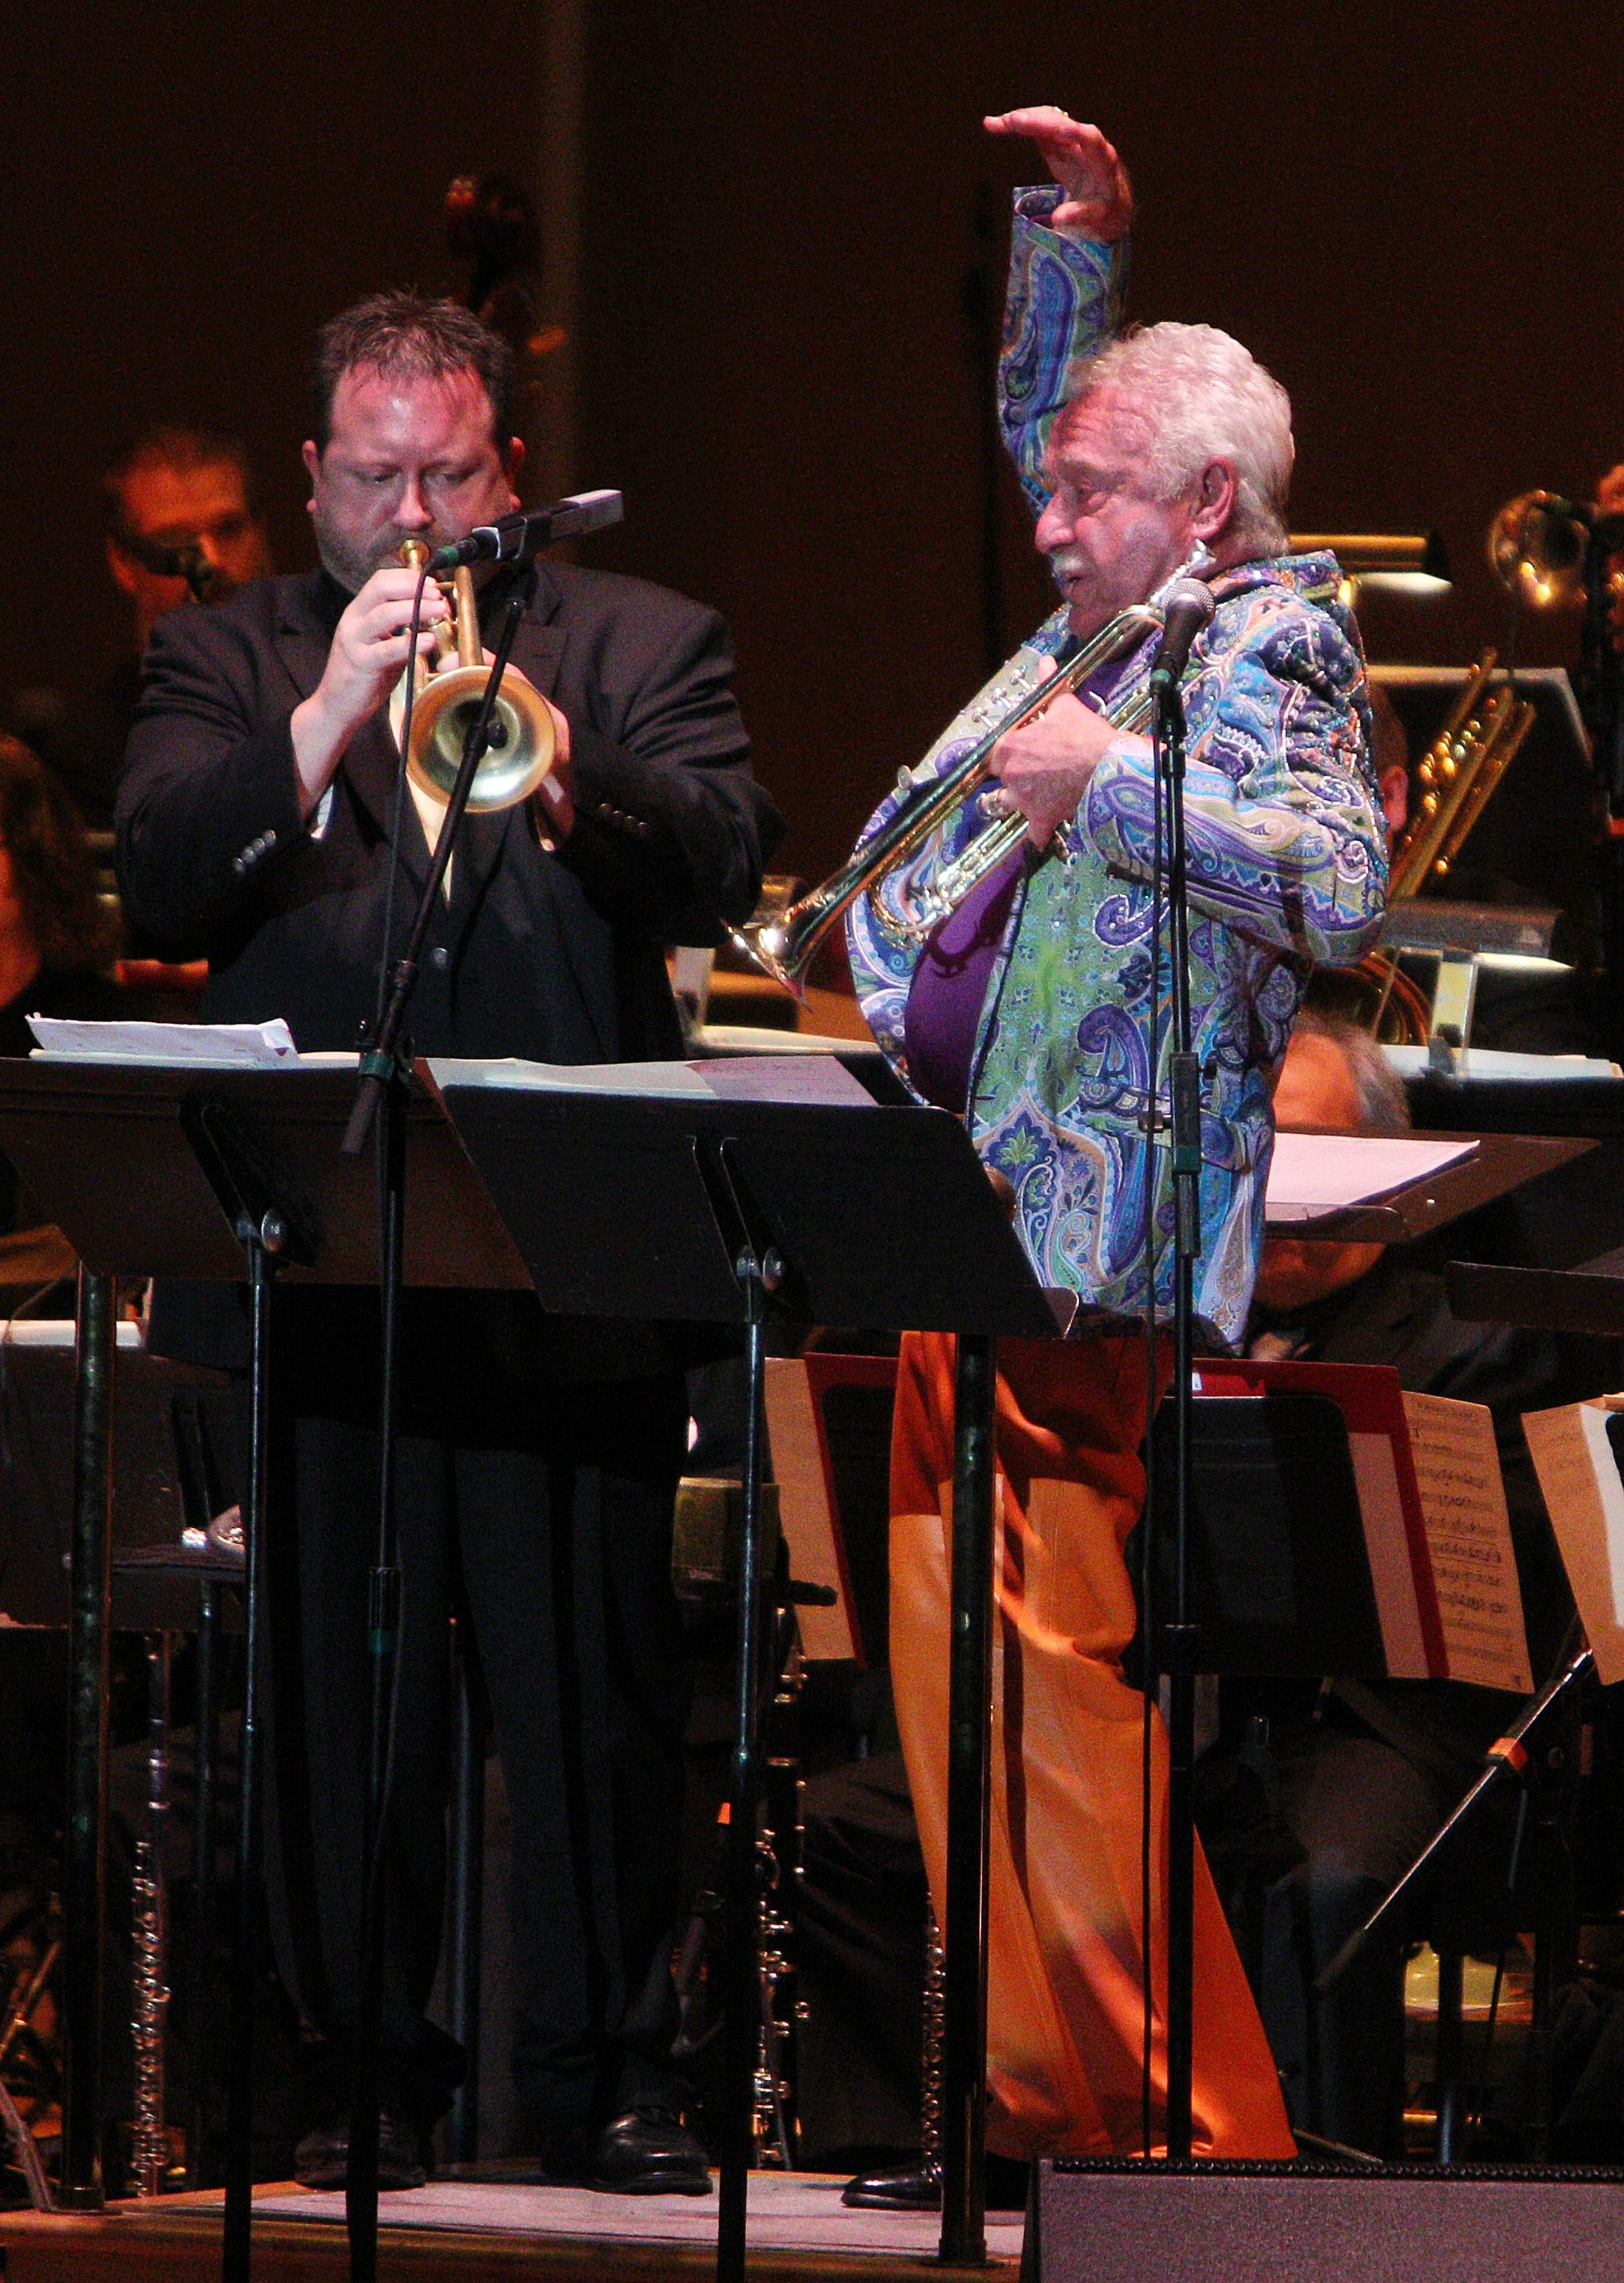 """Doc Severinsen conducted and played trumpet in the first of three BPO concerts at Kleinhans Music Hall in Buffalo, Friday, Oct. 25, 2013. Here, he plays trumpet for a Tommy Dorsey song """"Well, Git It!""""  He's accompanied on trumpet by Brad Shermock from his big band.  (Sharon Cantillon/Buffalo News)"""